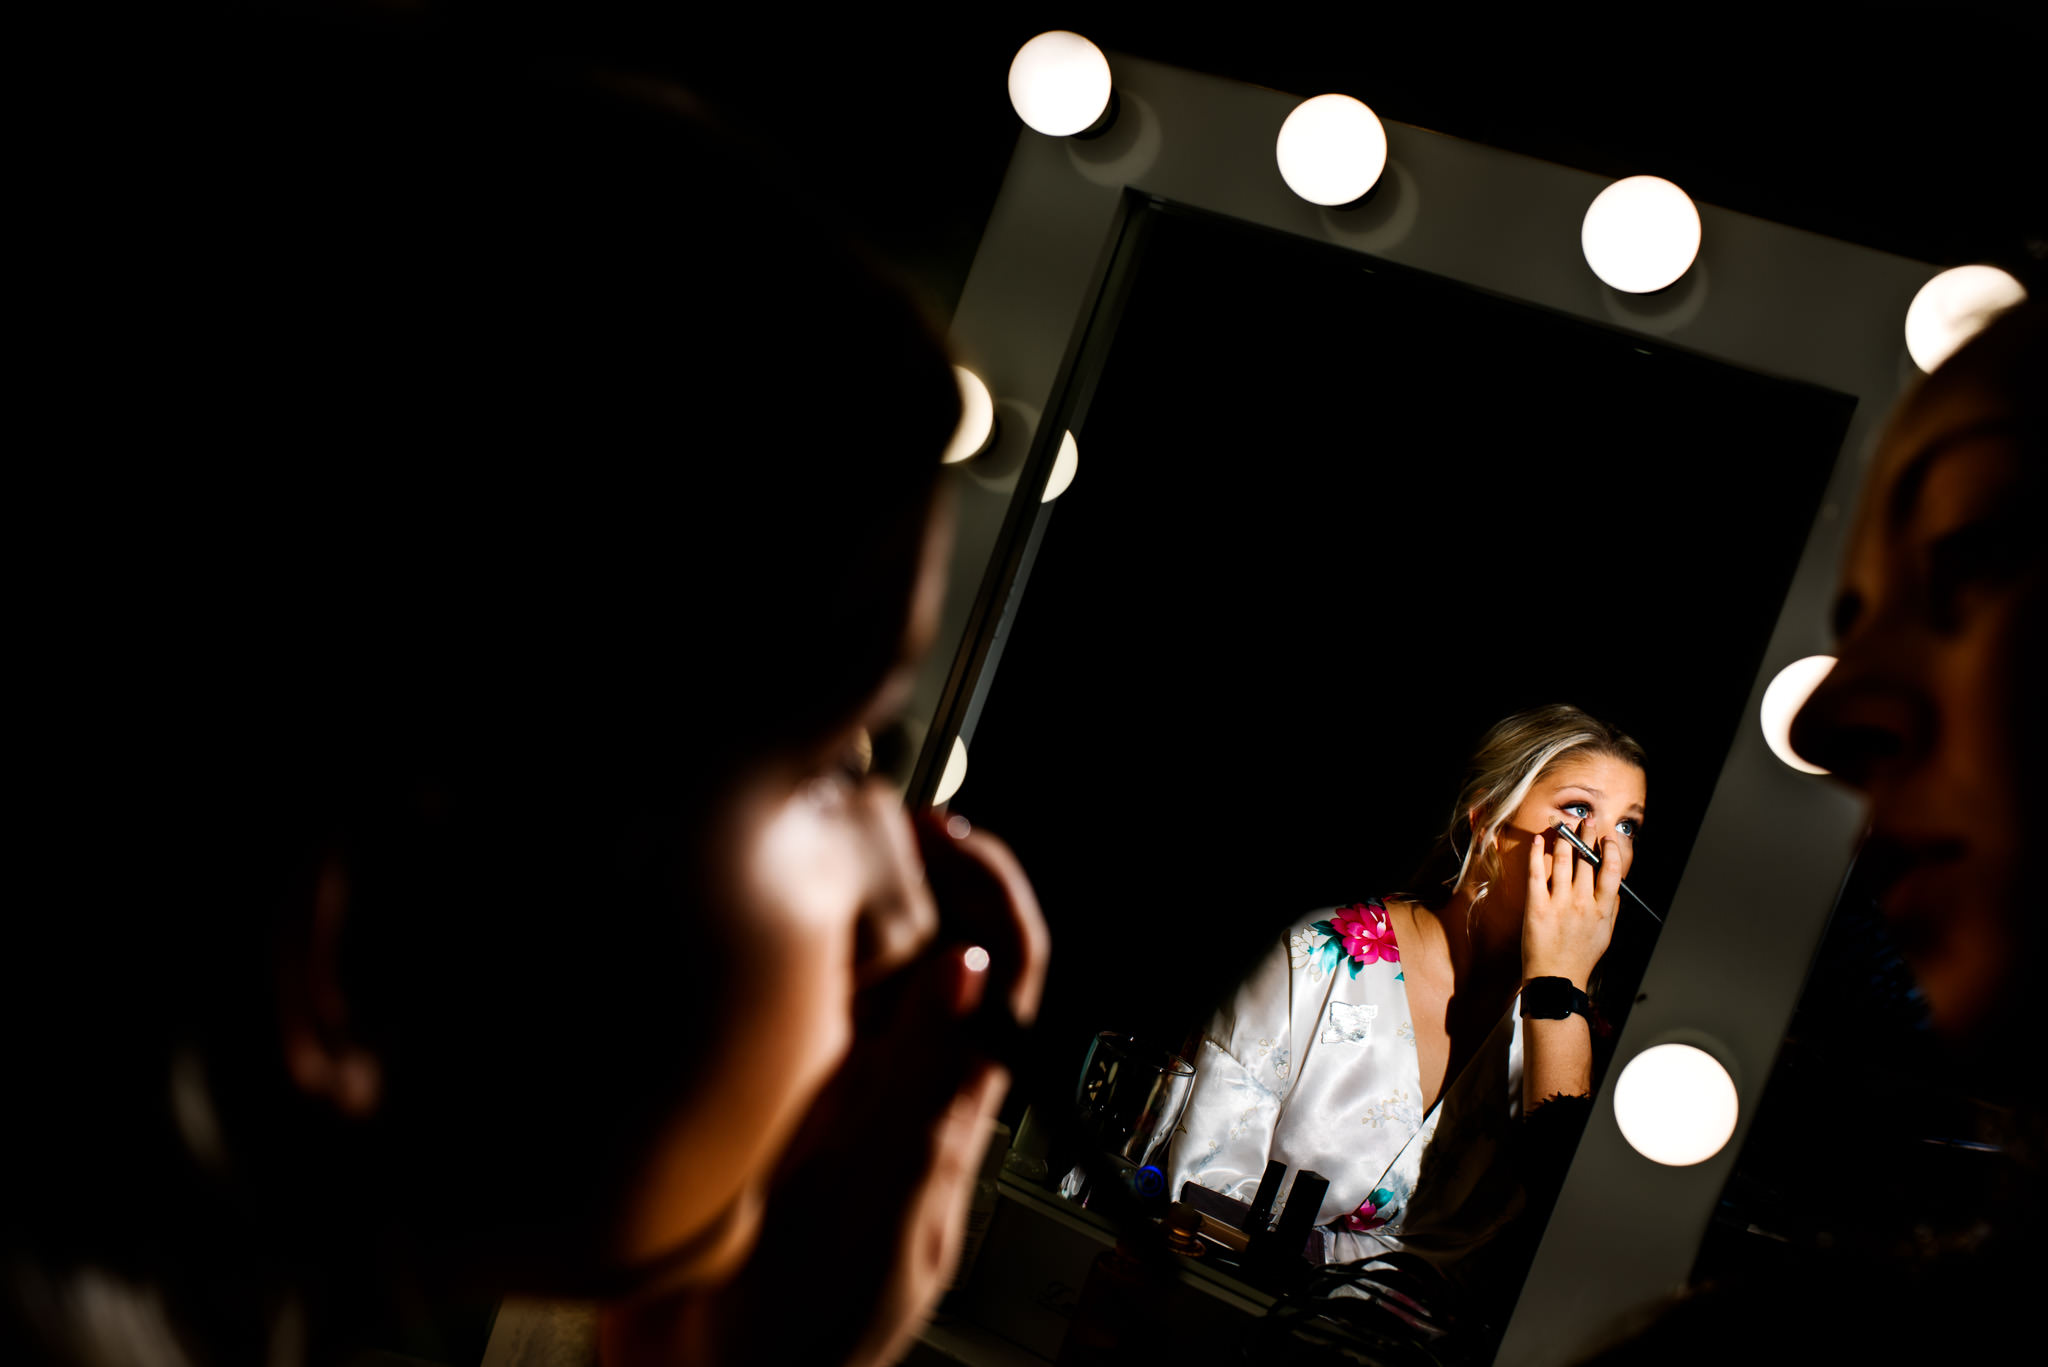 View of bride in mirror getting makeup done before wedding